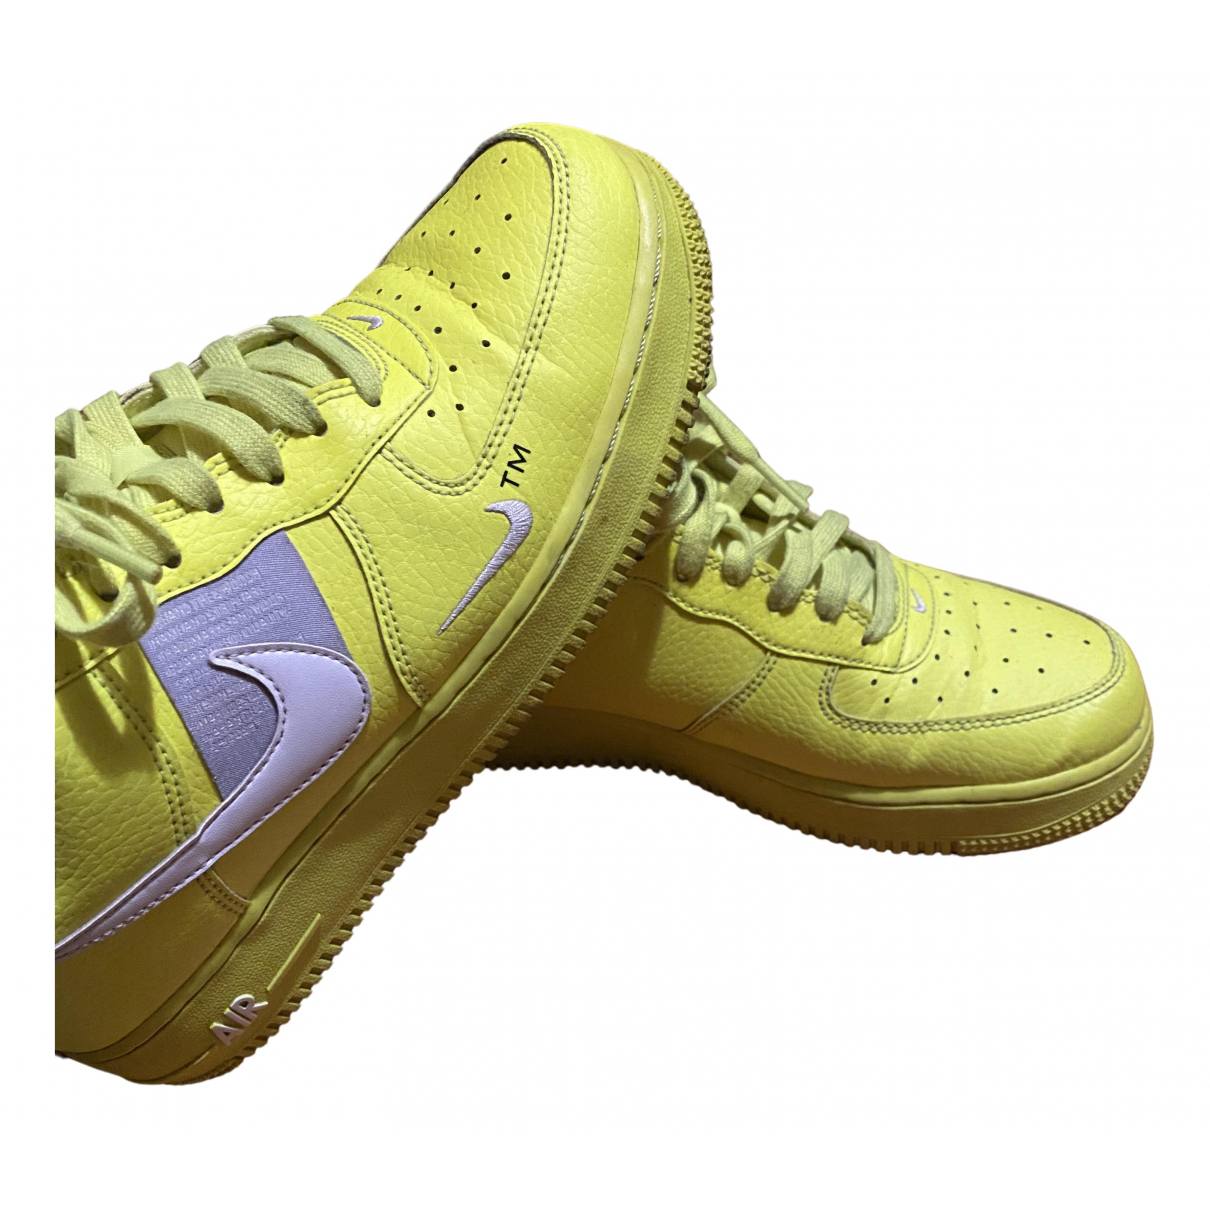 Nike Air Force 1 Green Rubber Trainers for Men 40 EU